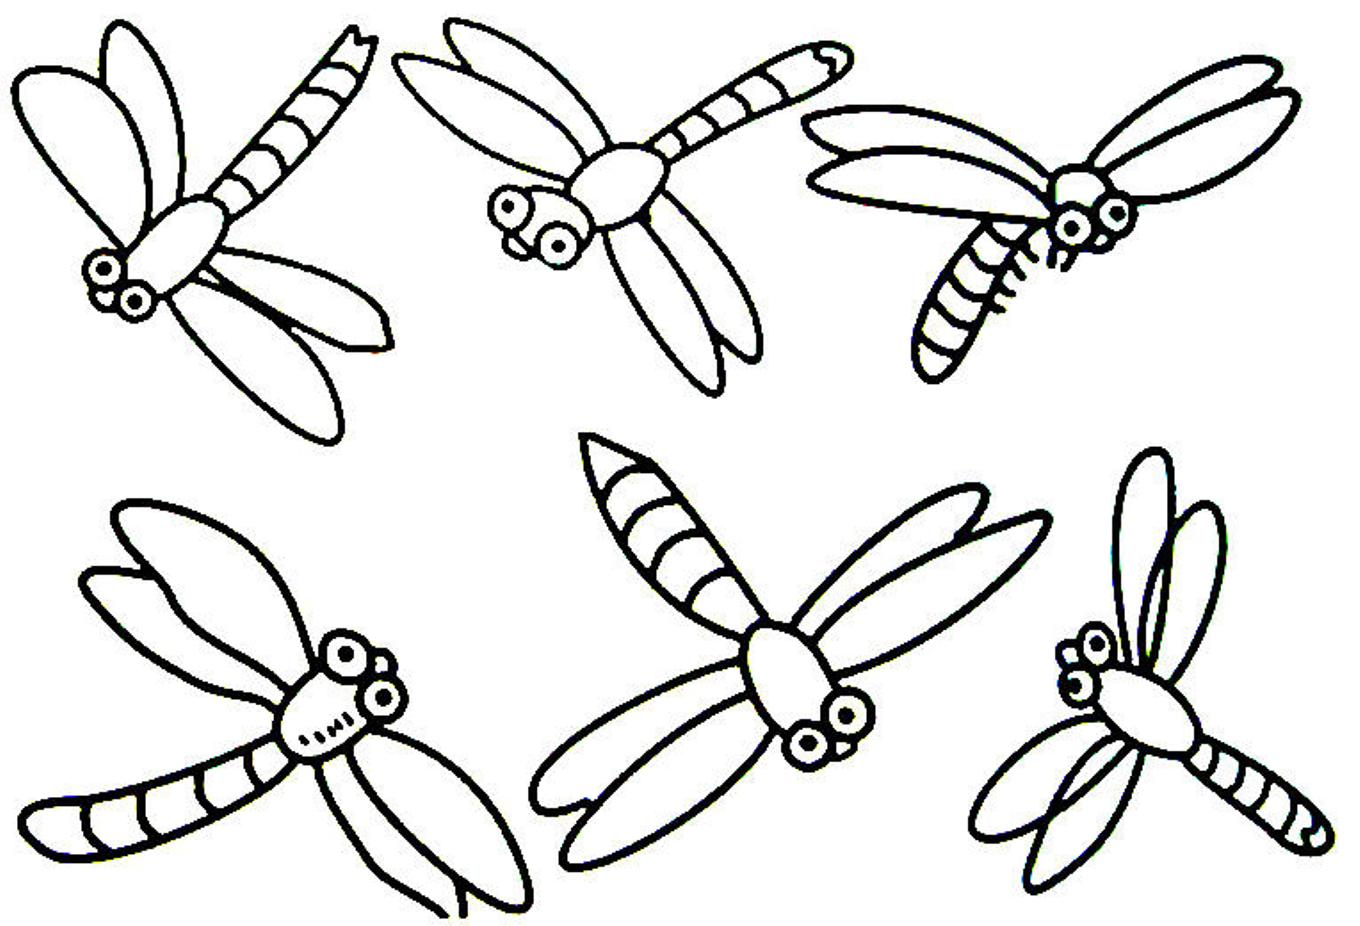 Dragonfly coloring #4, Download drawings